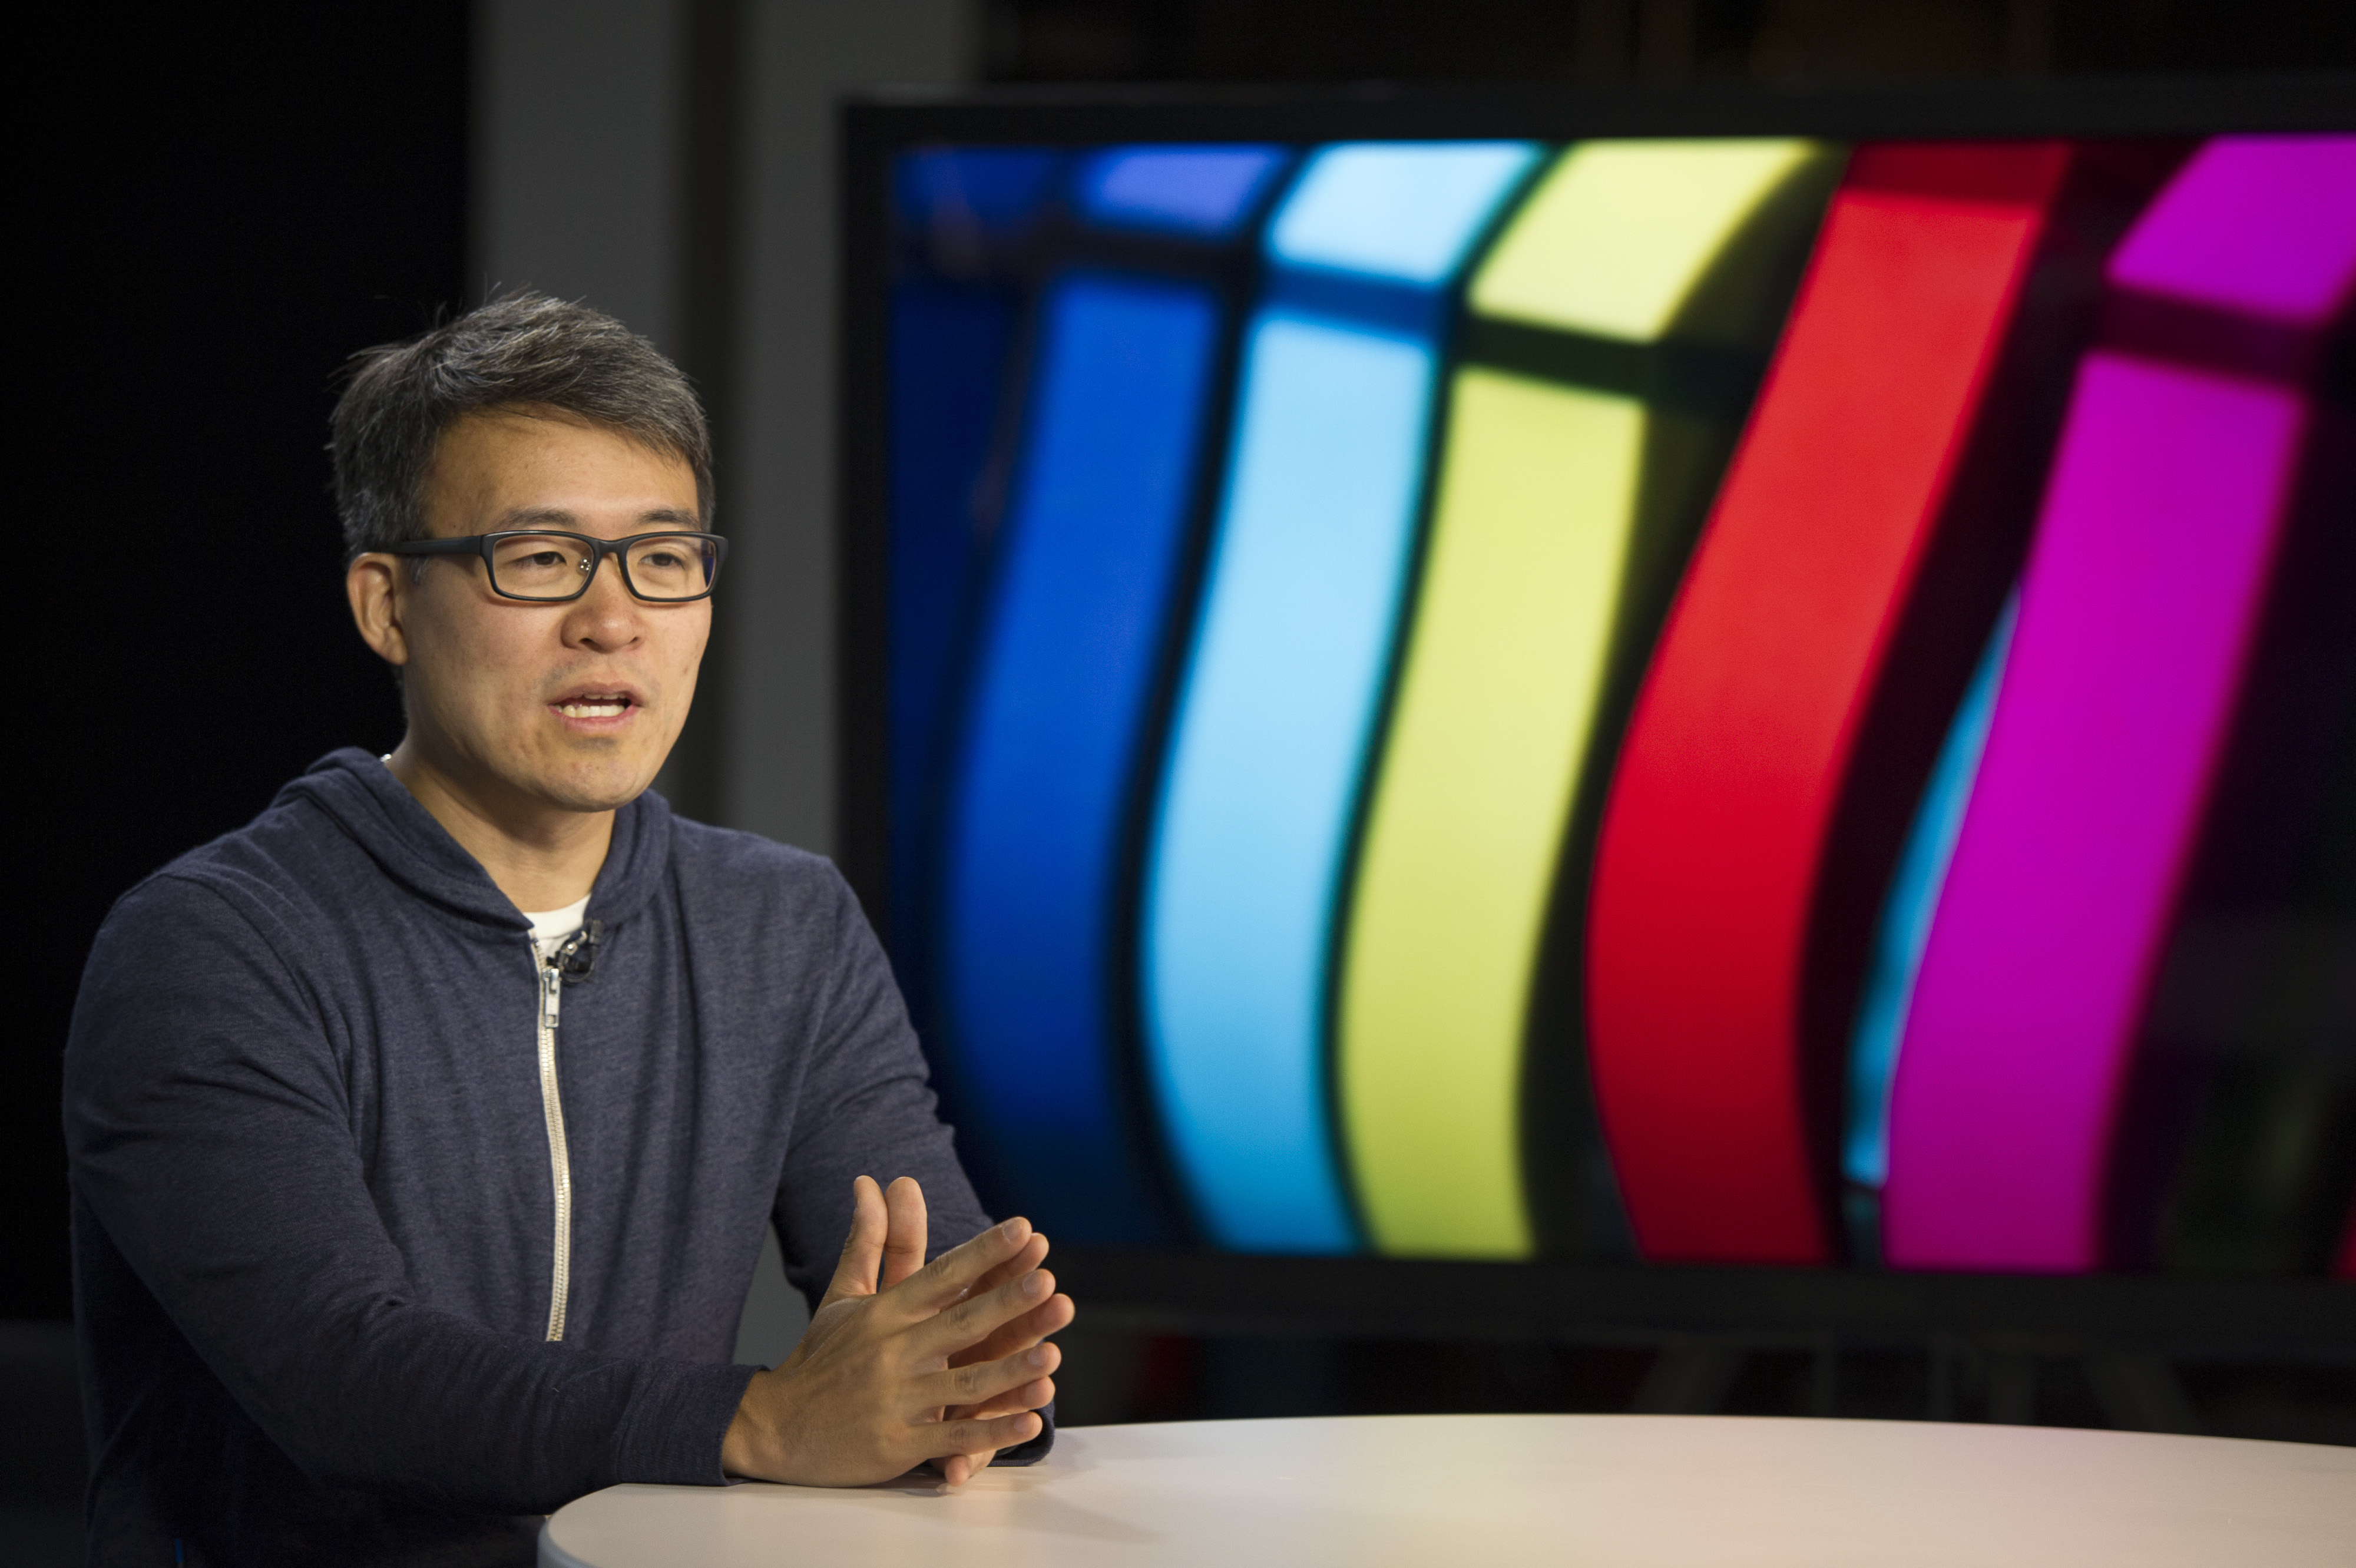 James Park, co-founder and chief executive officer of Fitbit Inc., speaks during a Bloomberg Television interview in San Francisco, California, U.S., on Friday, Aug. 22, 2014.